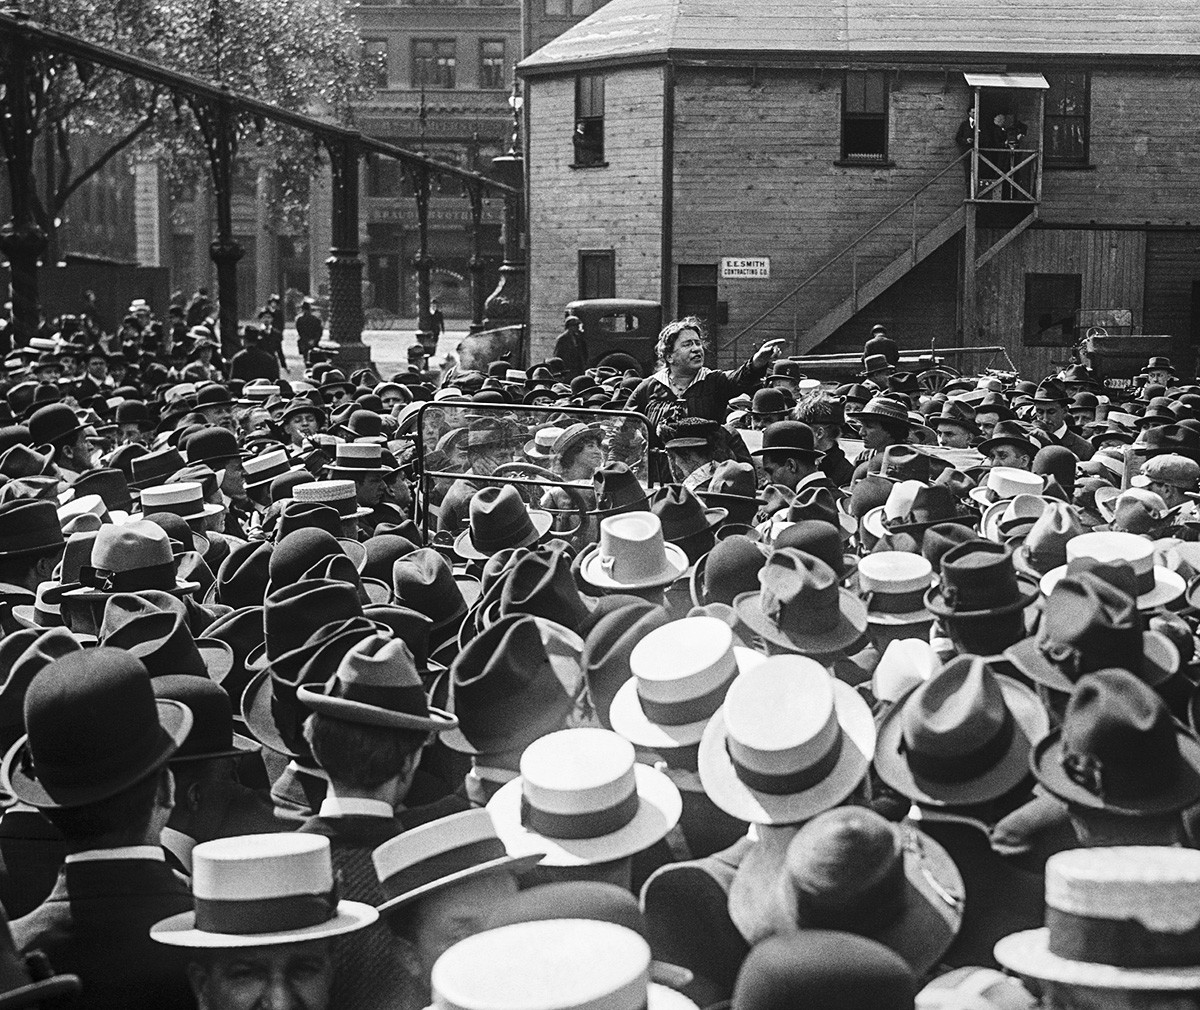 Emma Goldman standing in car speaks about birth control at Union Square Park in 1916.